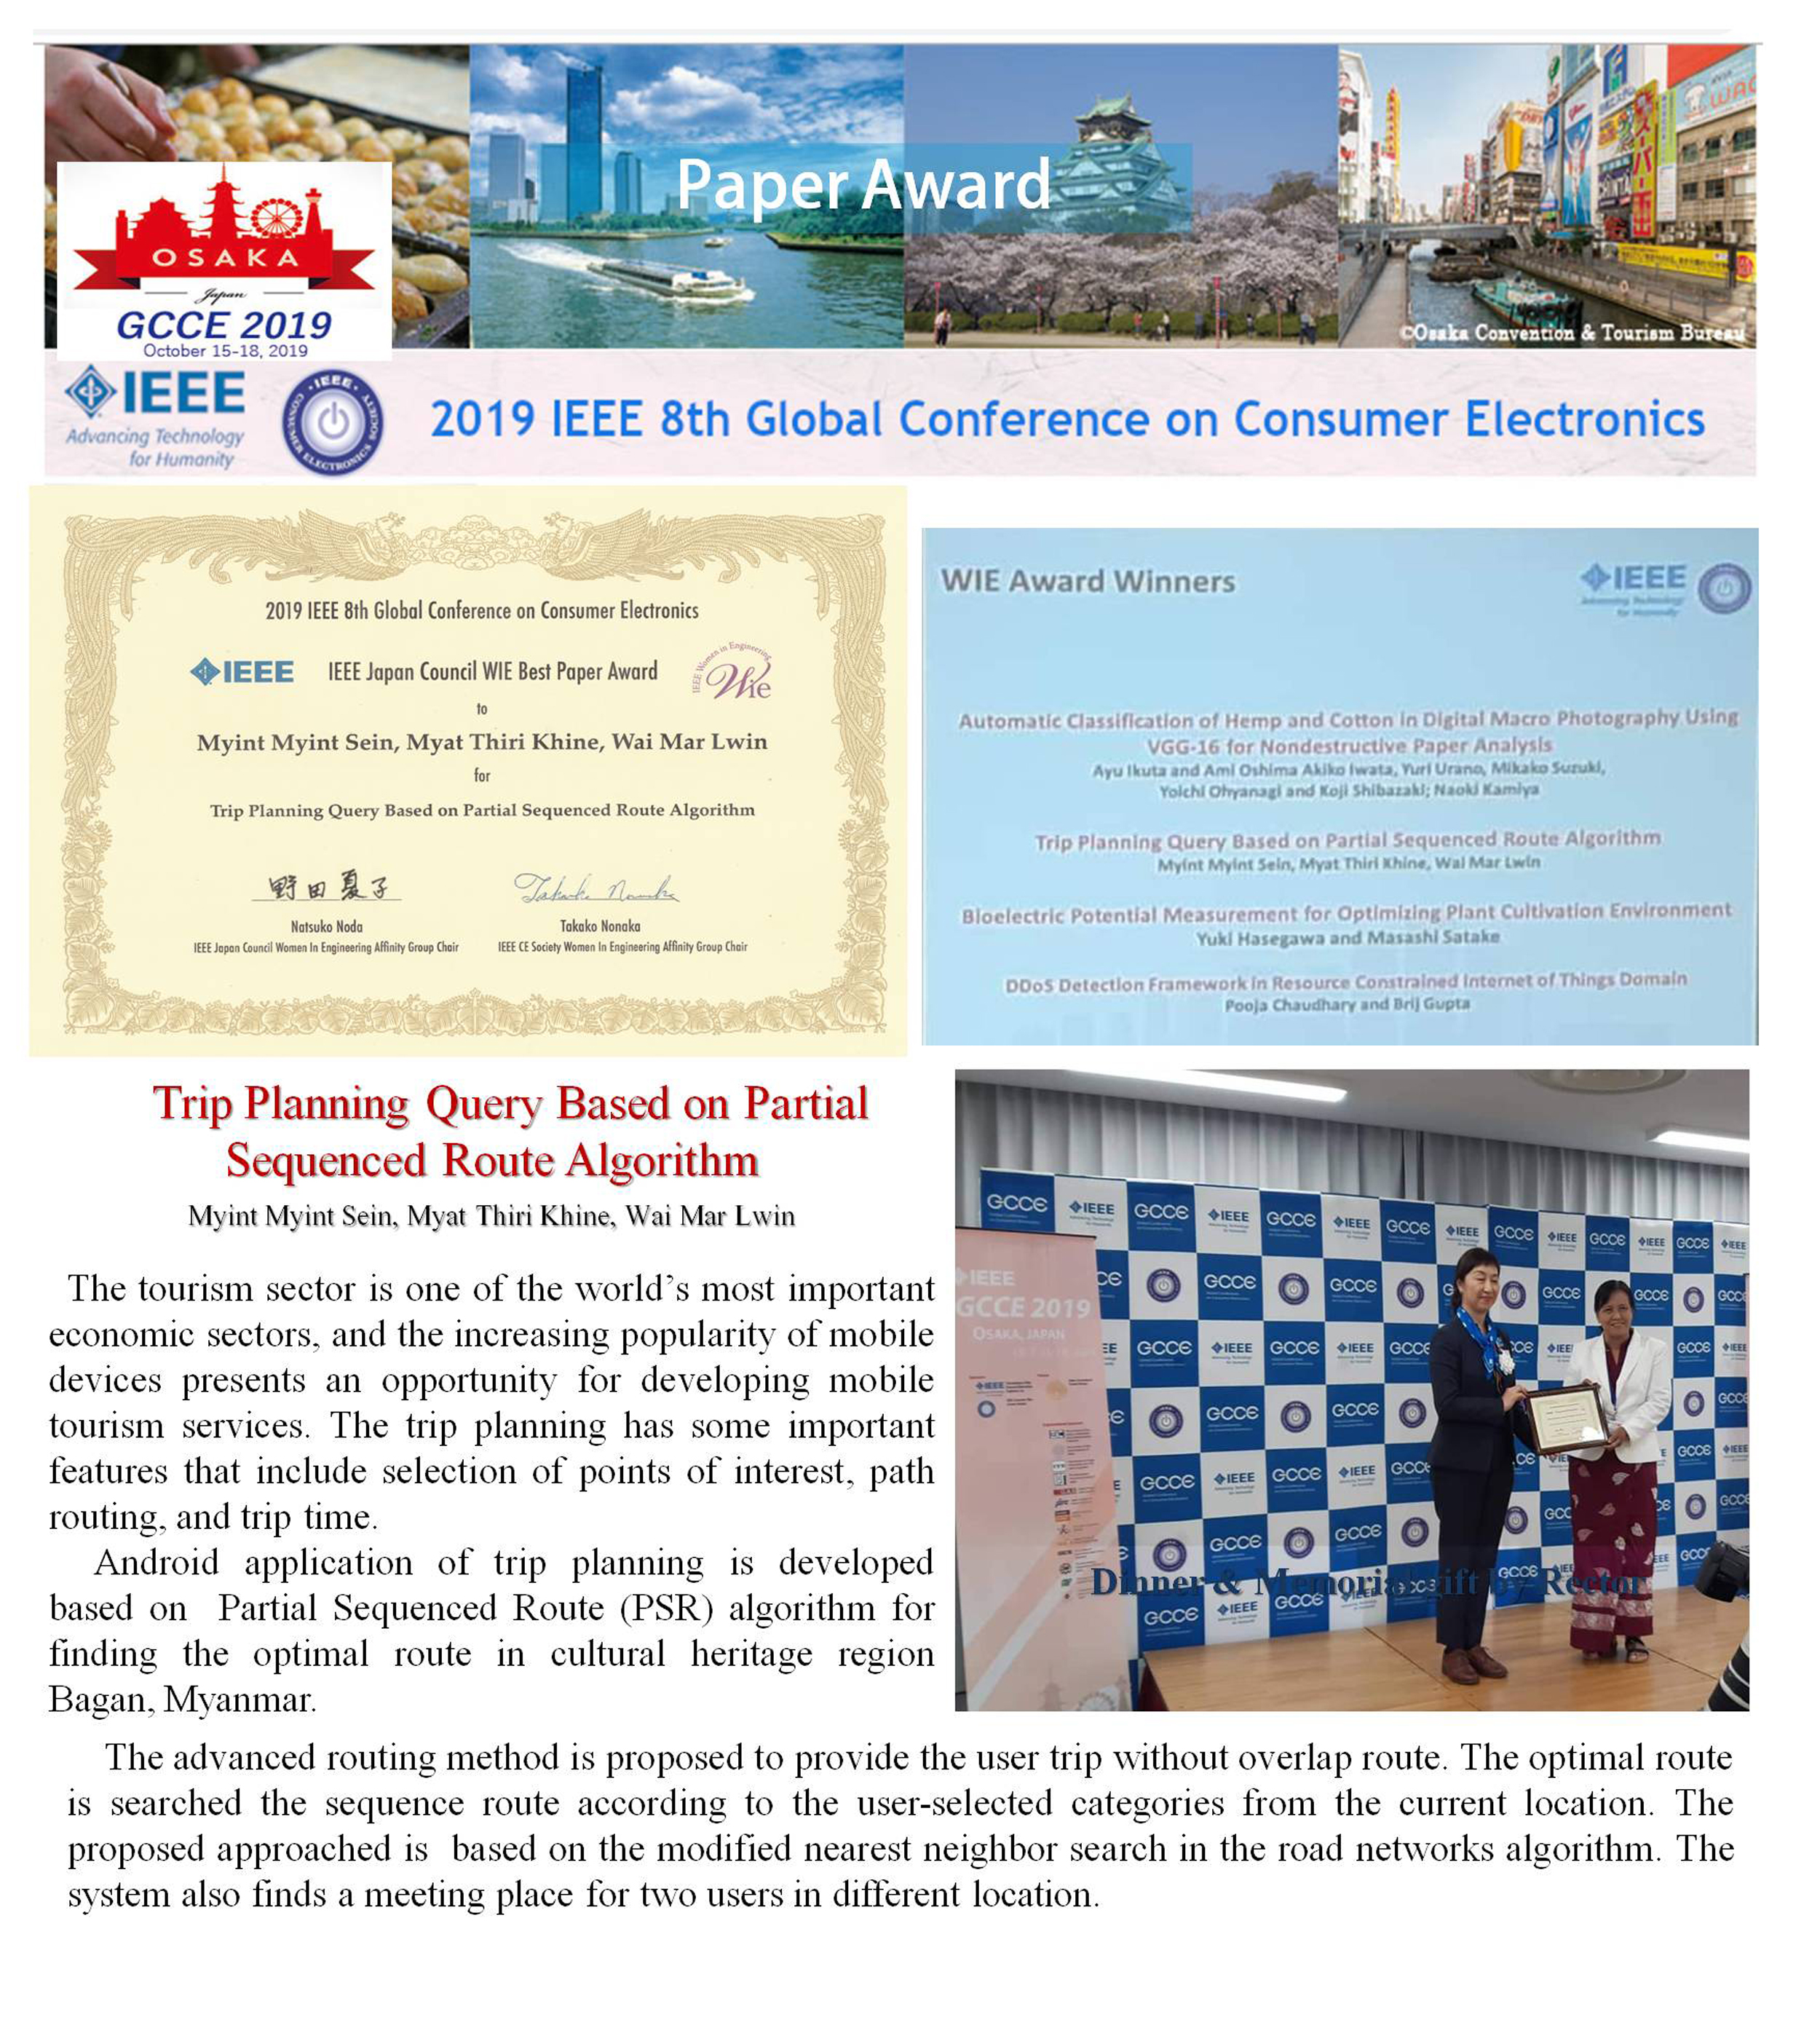 IEEE GCCE Conference Awards